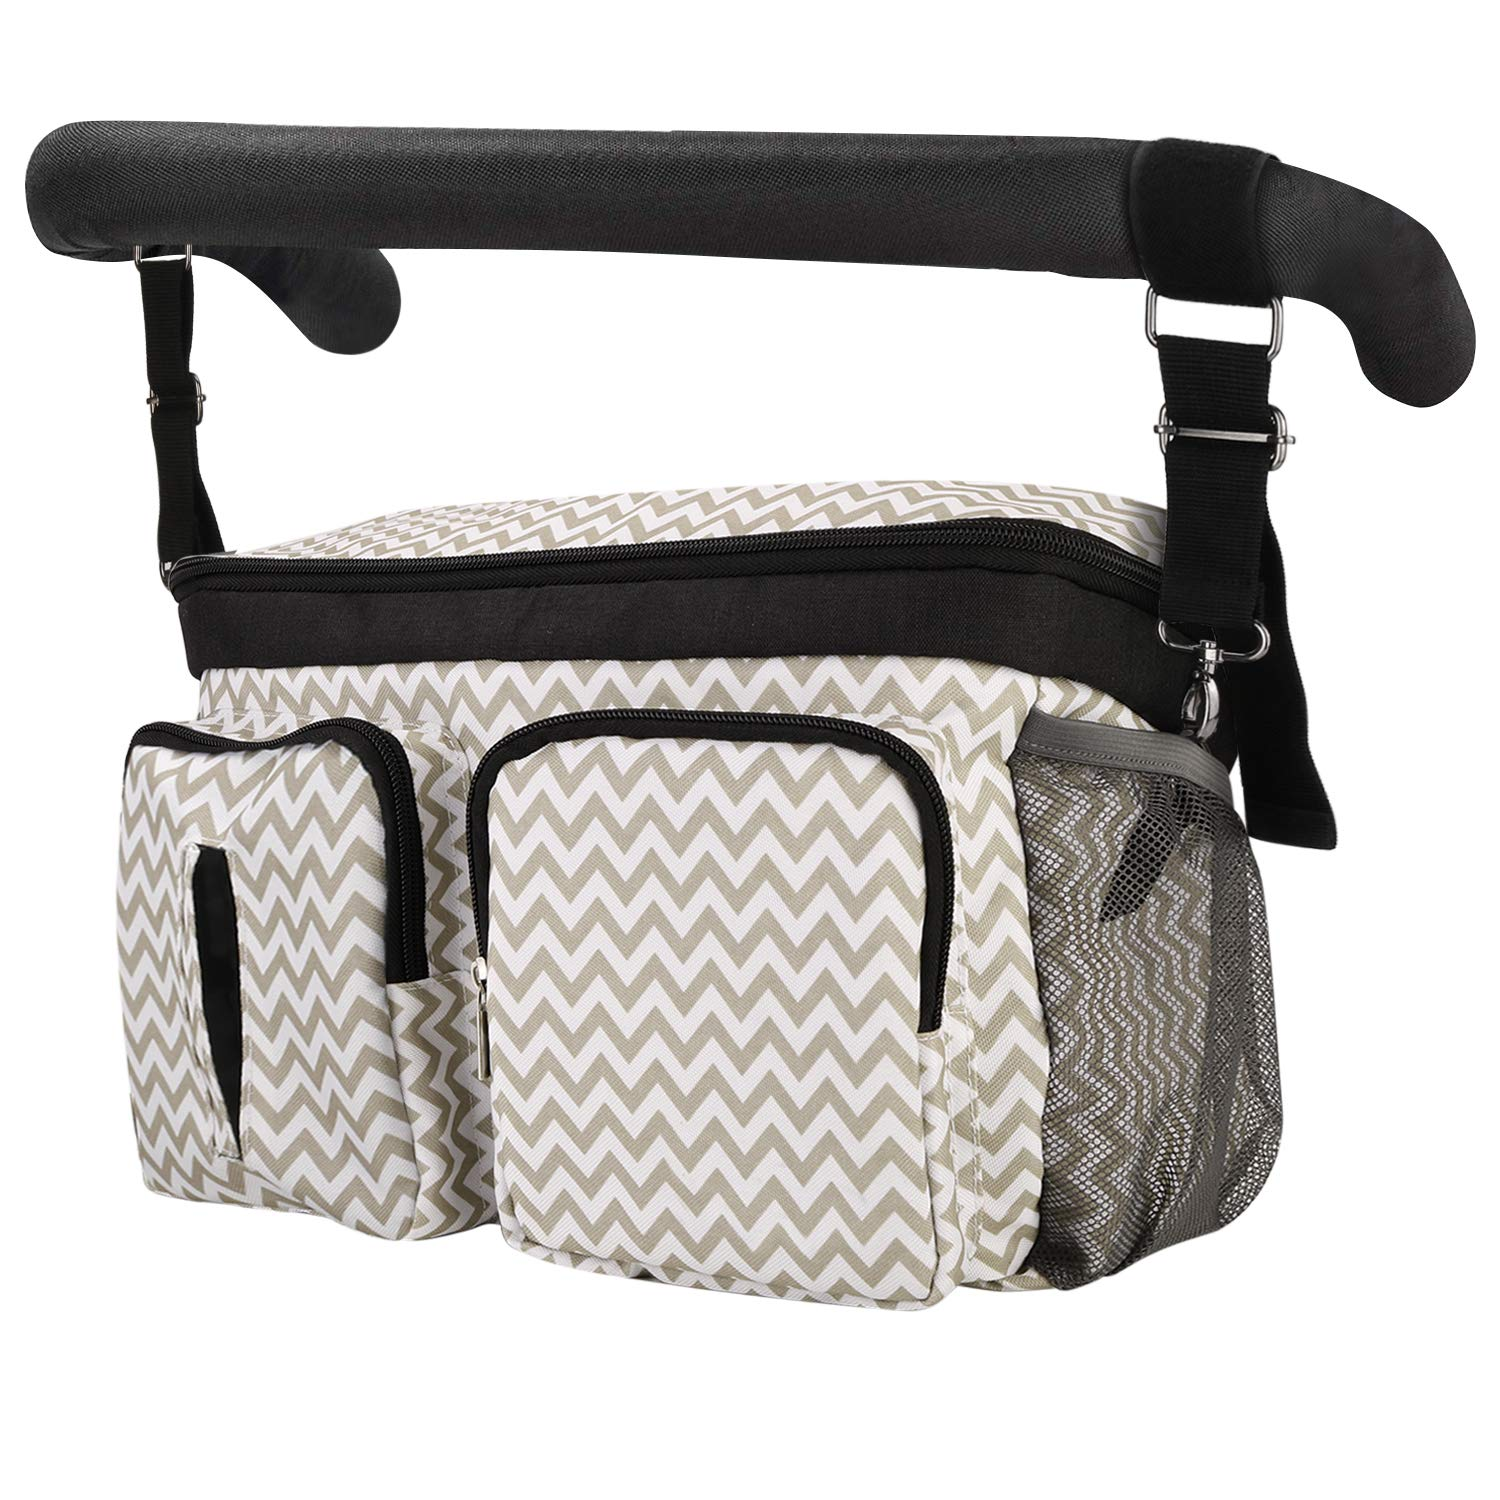 Ripple Baby Stroller Organizer Bag,Wet Dry Separated Stroller Caddy Organizer,Large Capacity Waterproof Stroller Storage Bag,Non-Slip and Adjustable Straps,Multi-Function Baby Products Organizer